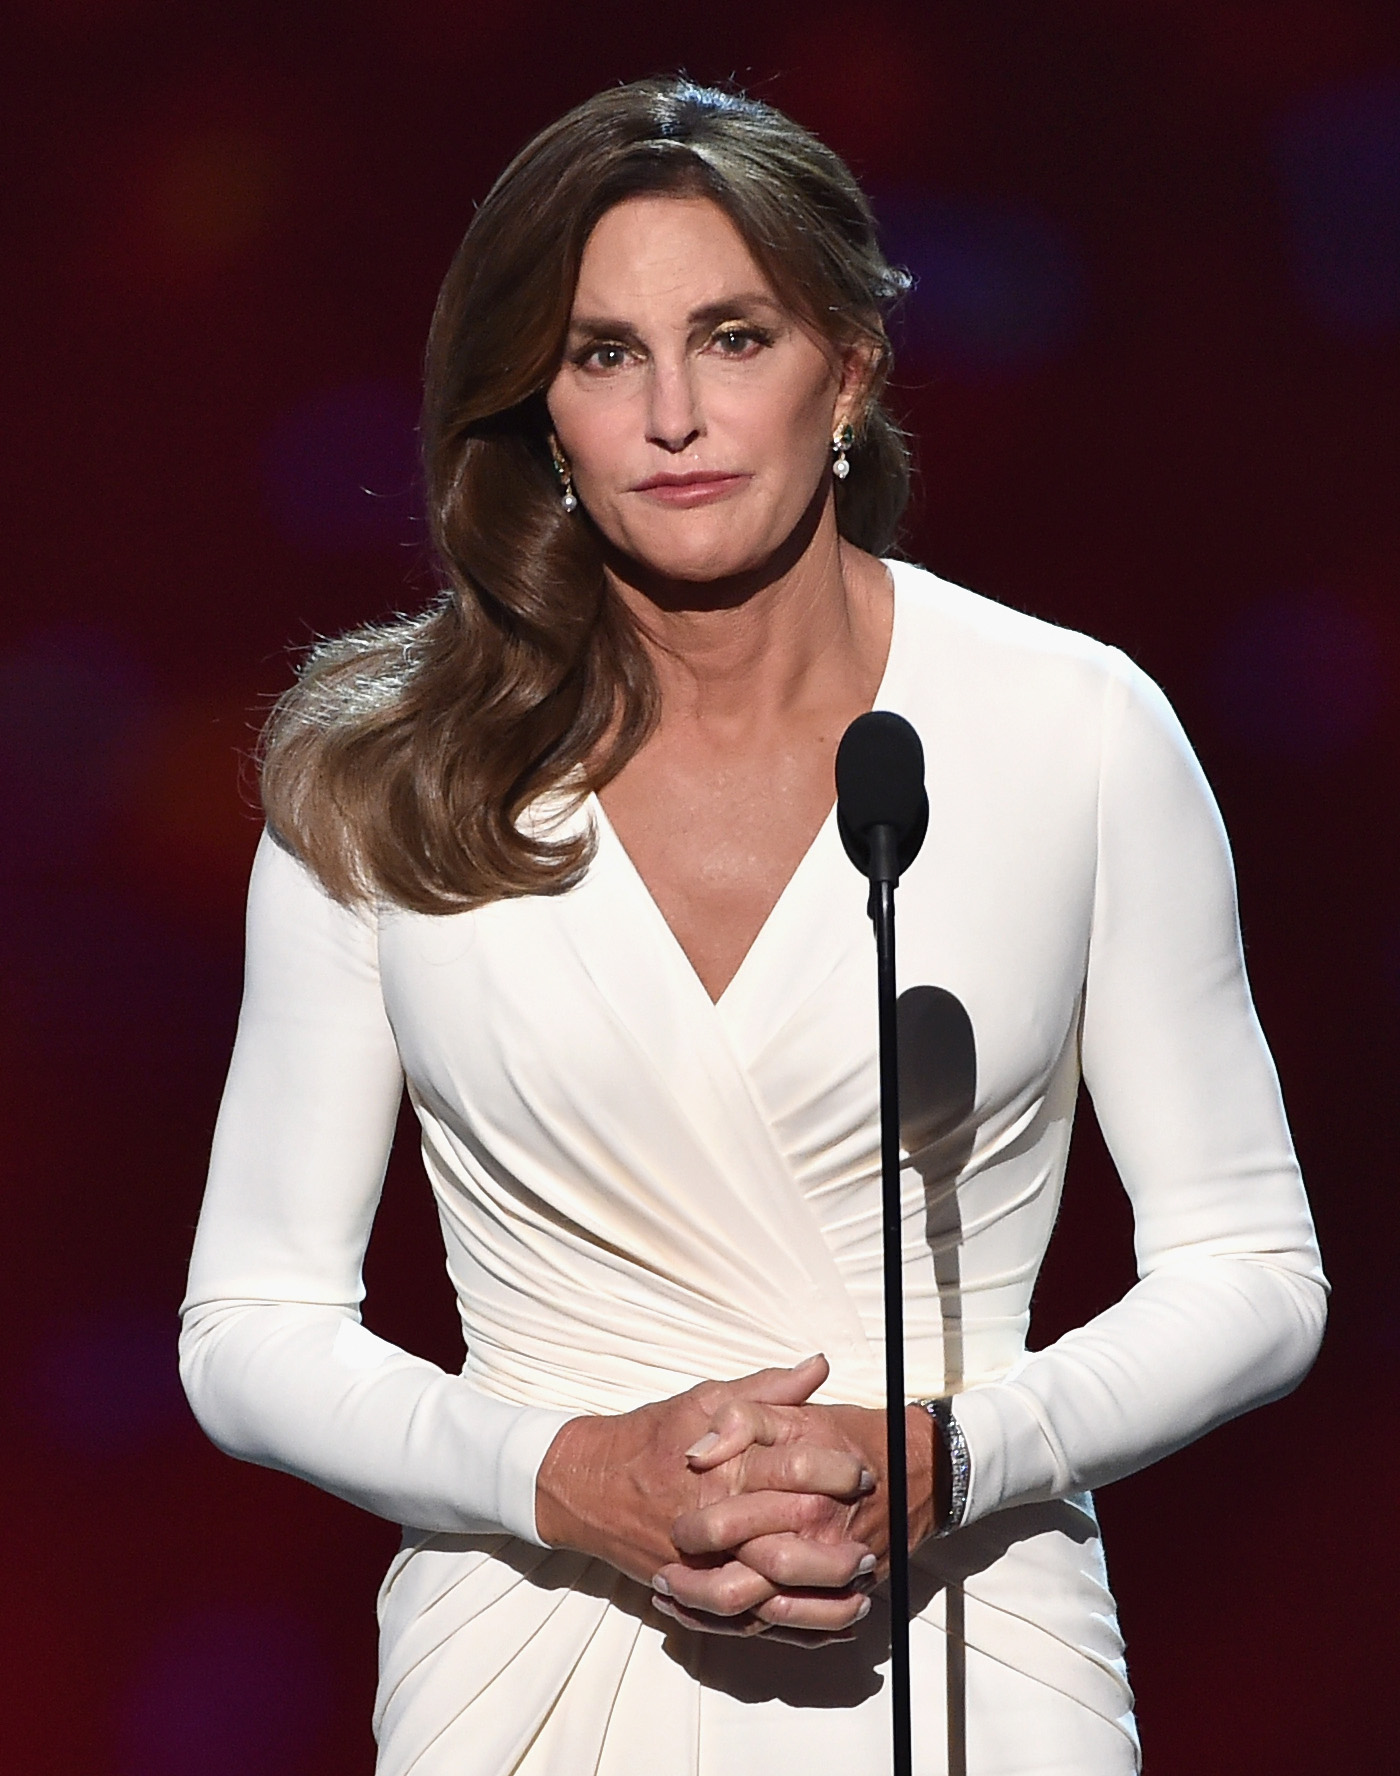 Caitlyn Jenner defends her Republican stance